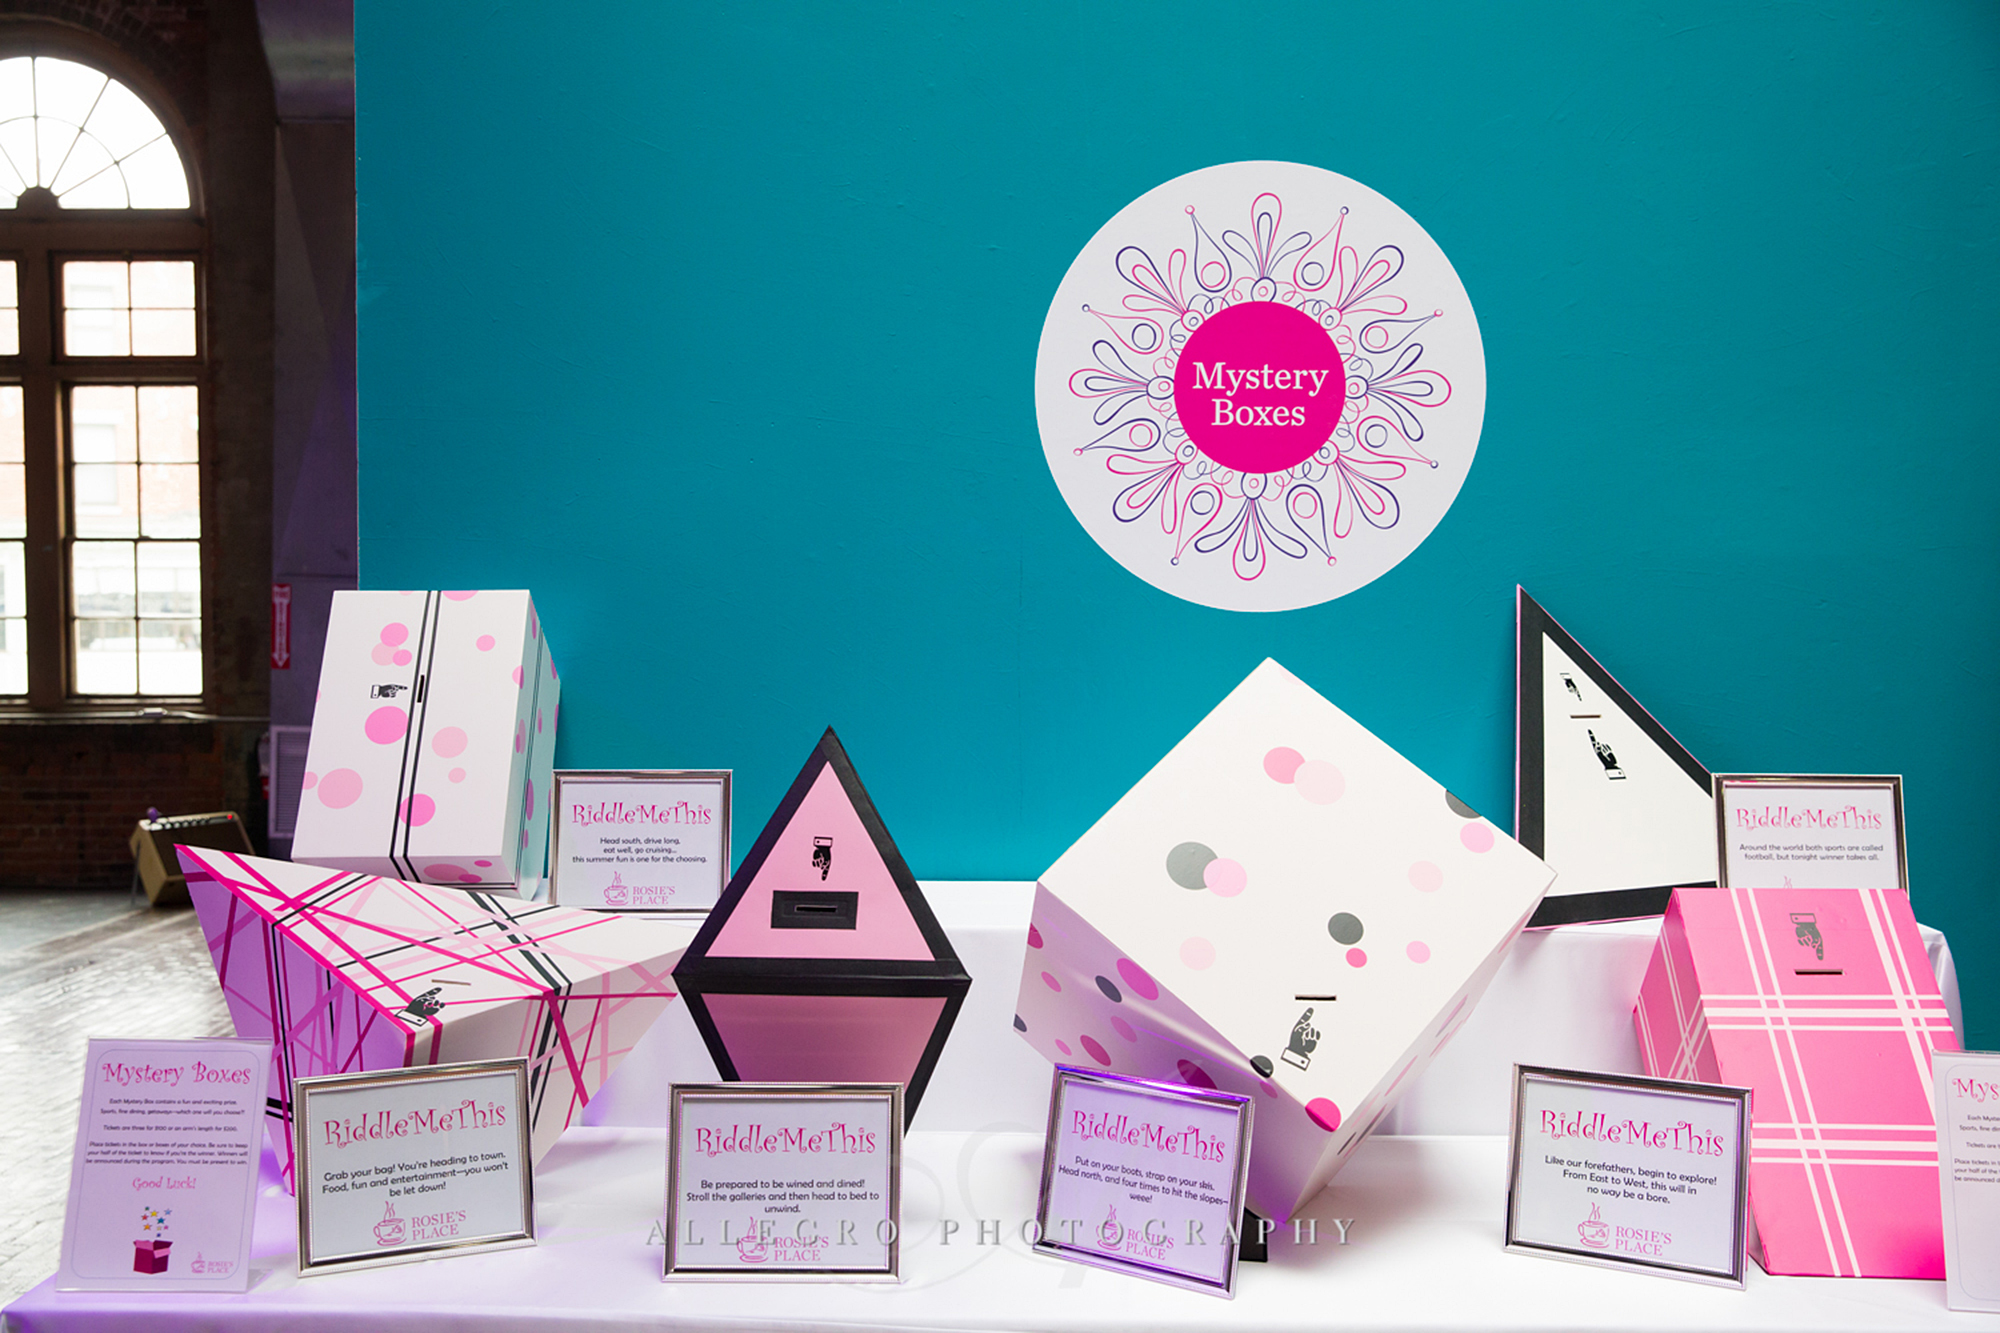 03_Rosies Place Gala Nonprofit Mystery Boxes_AE Events.jpg